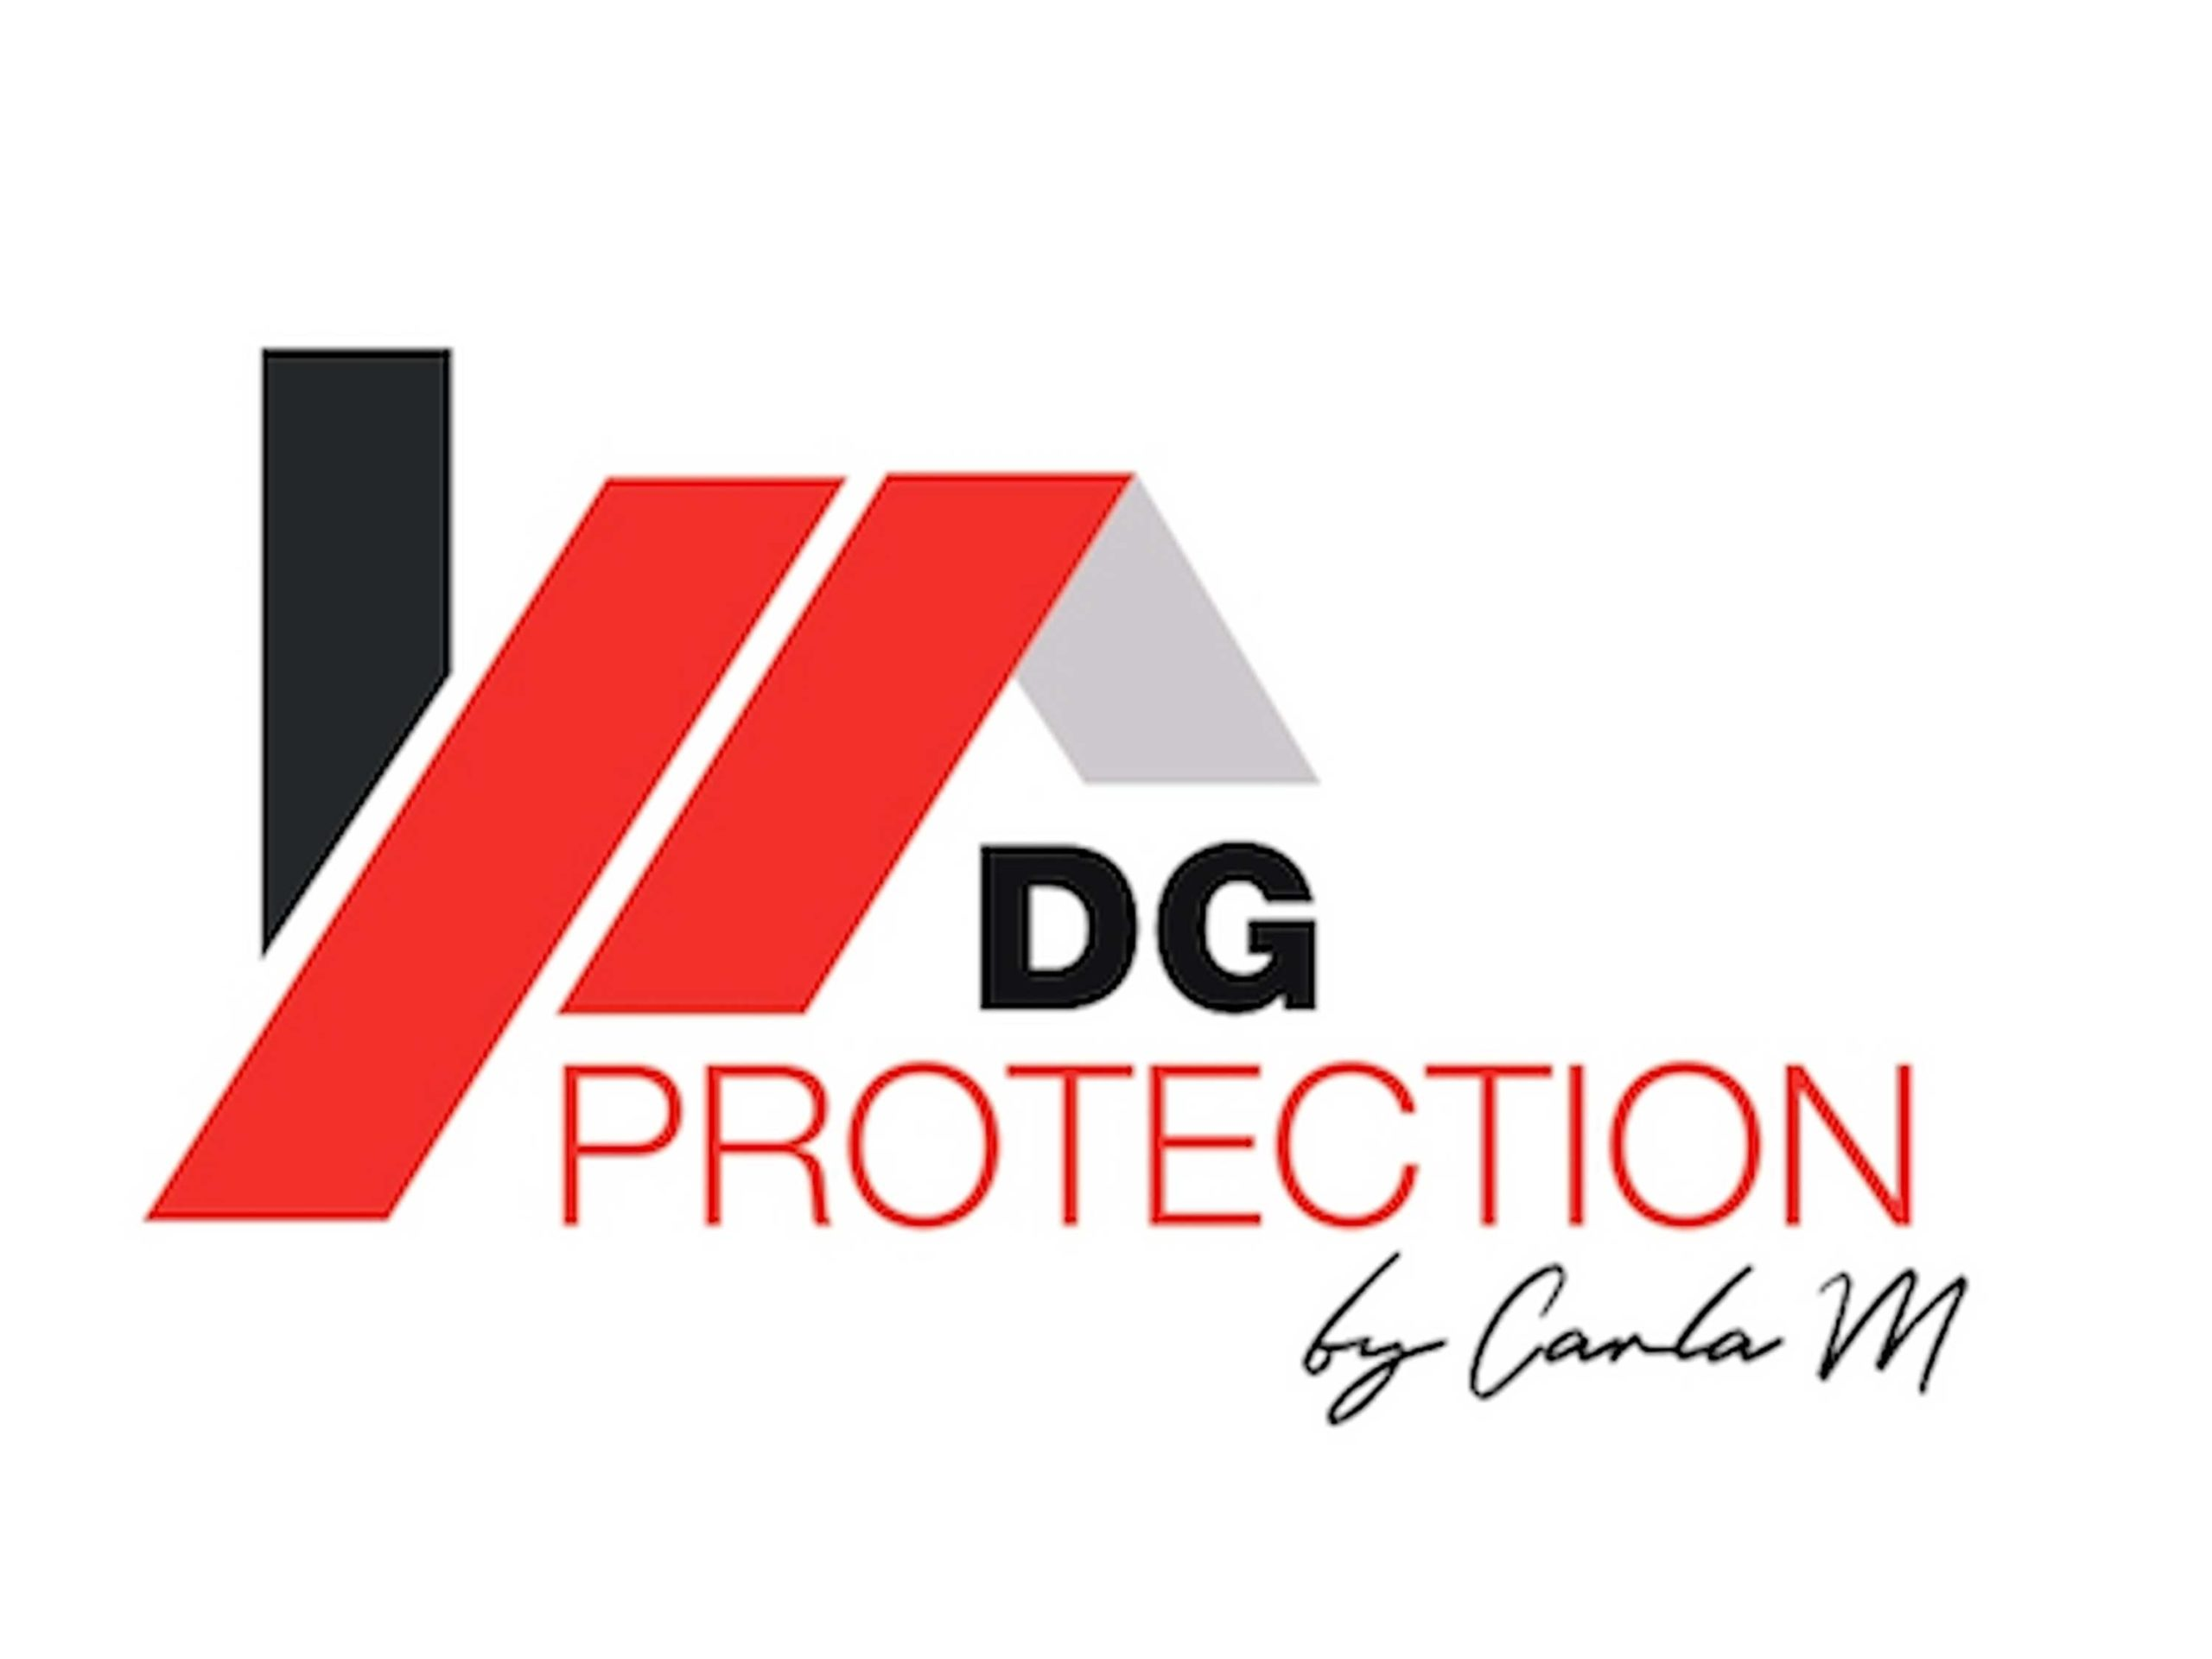 DGProtection by Carla M